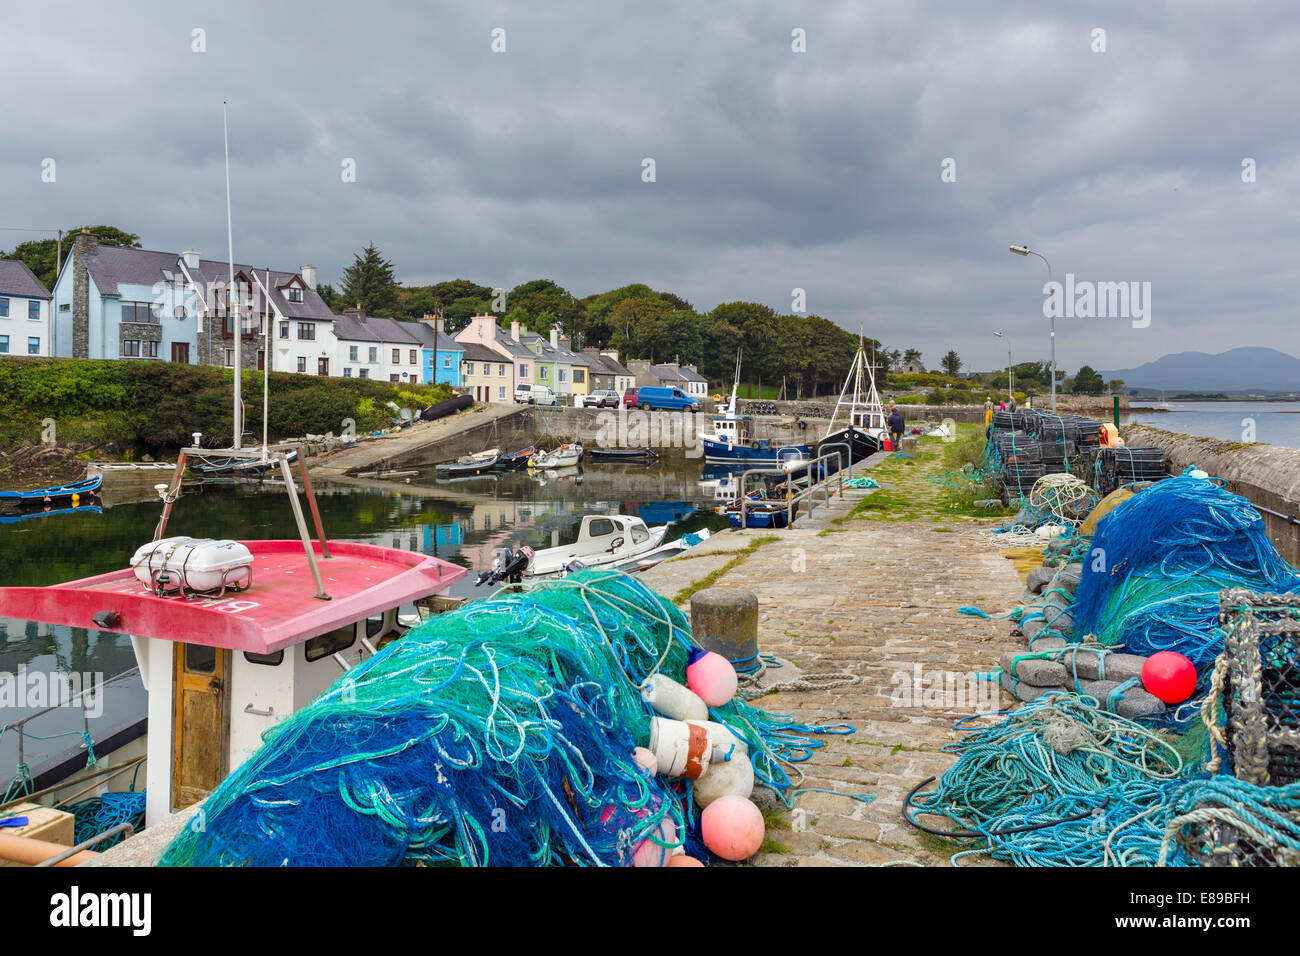 The picturesque harbour of Roundstone, Connemara, County Galway, Republic of Ireland Stock Photo